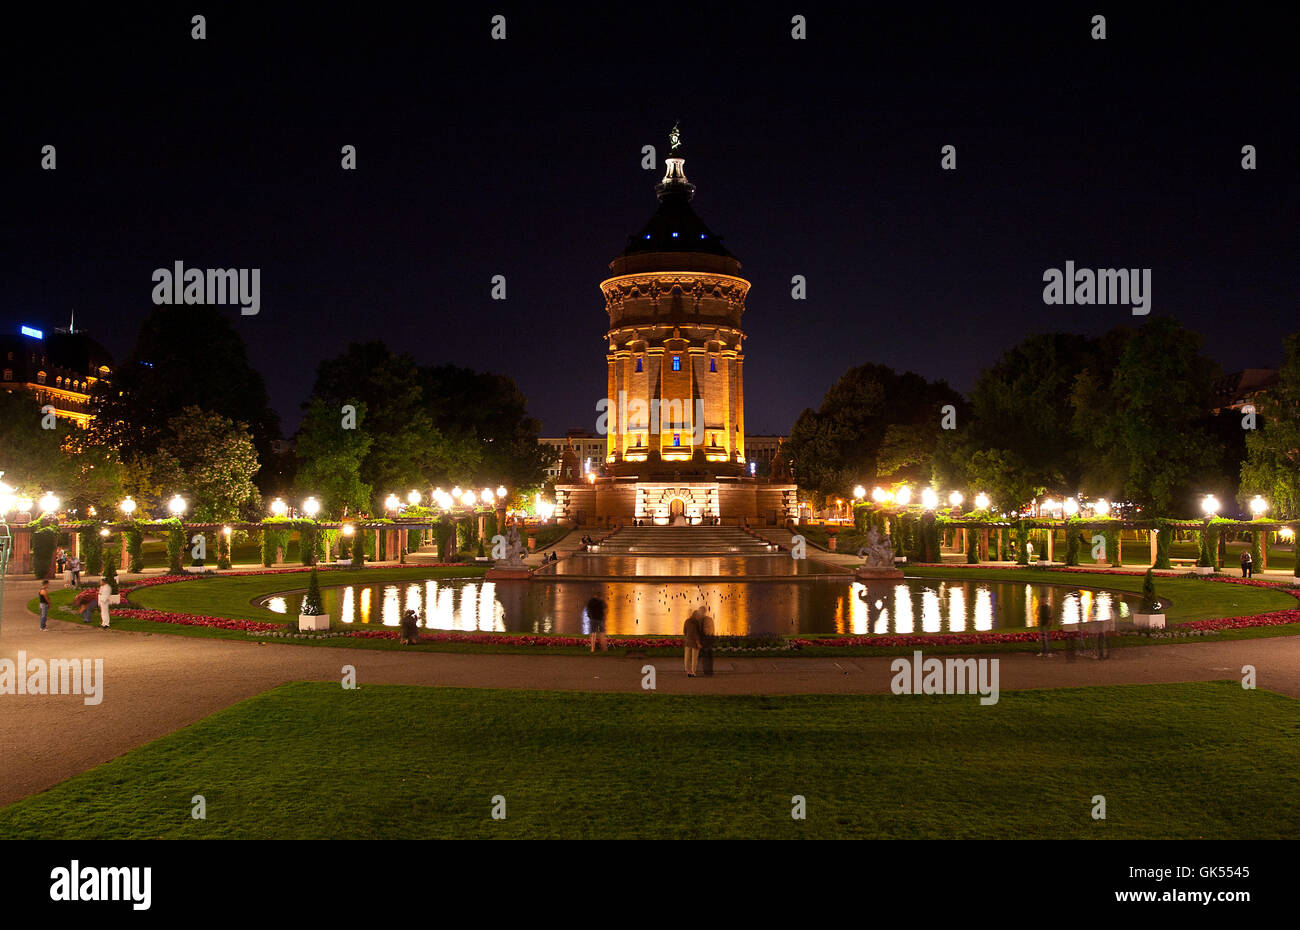 Mannheim water tower di notte Foto Stock